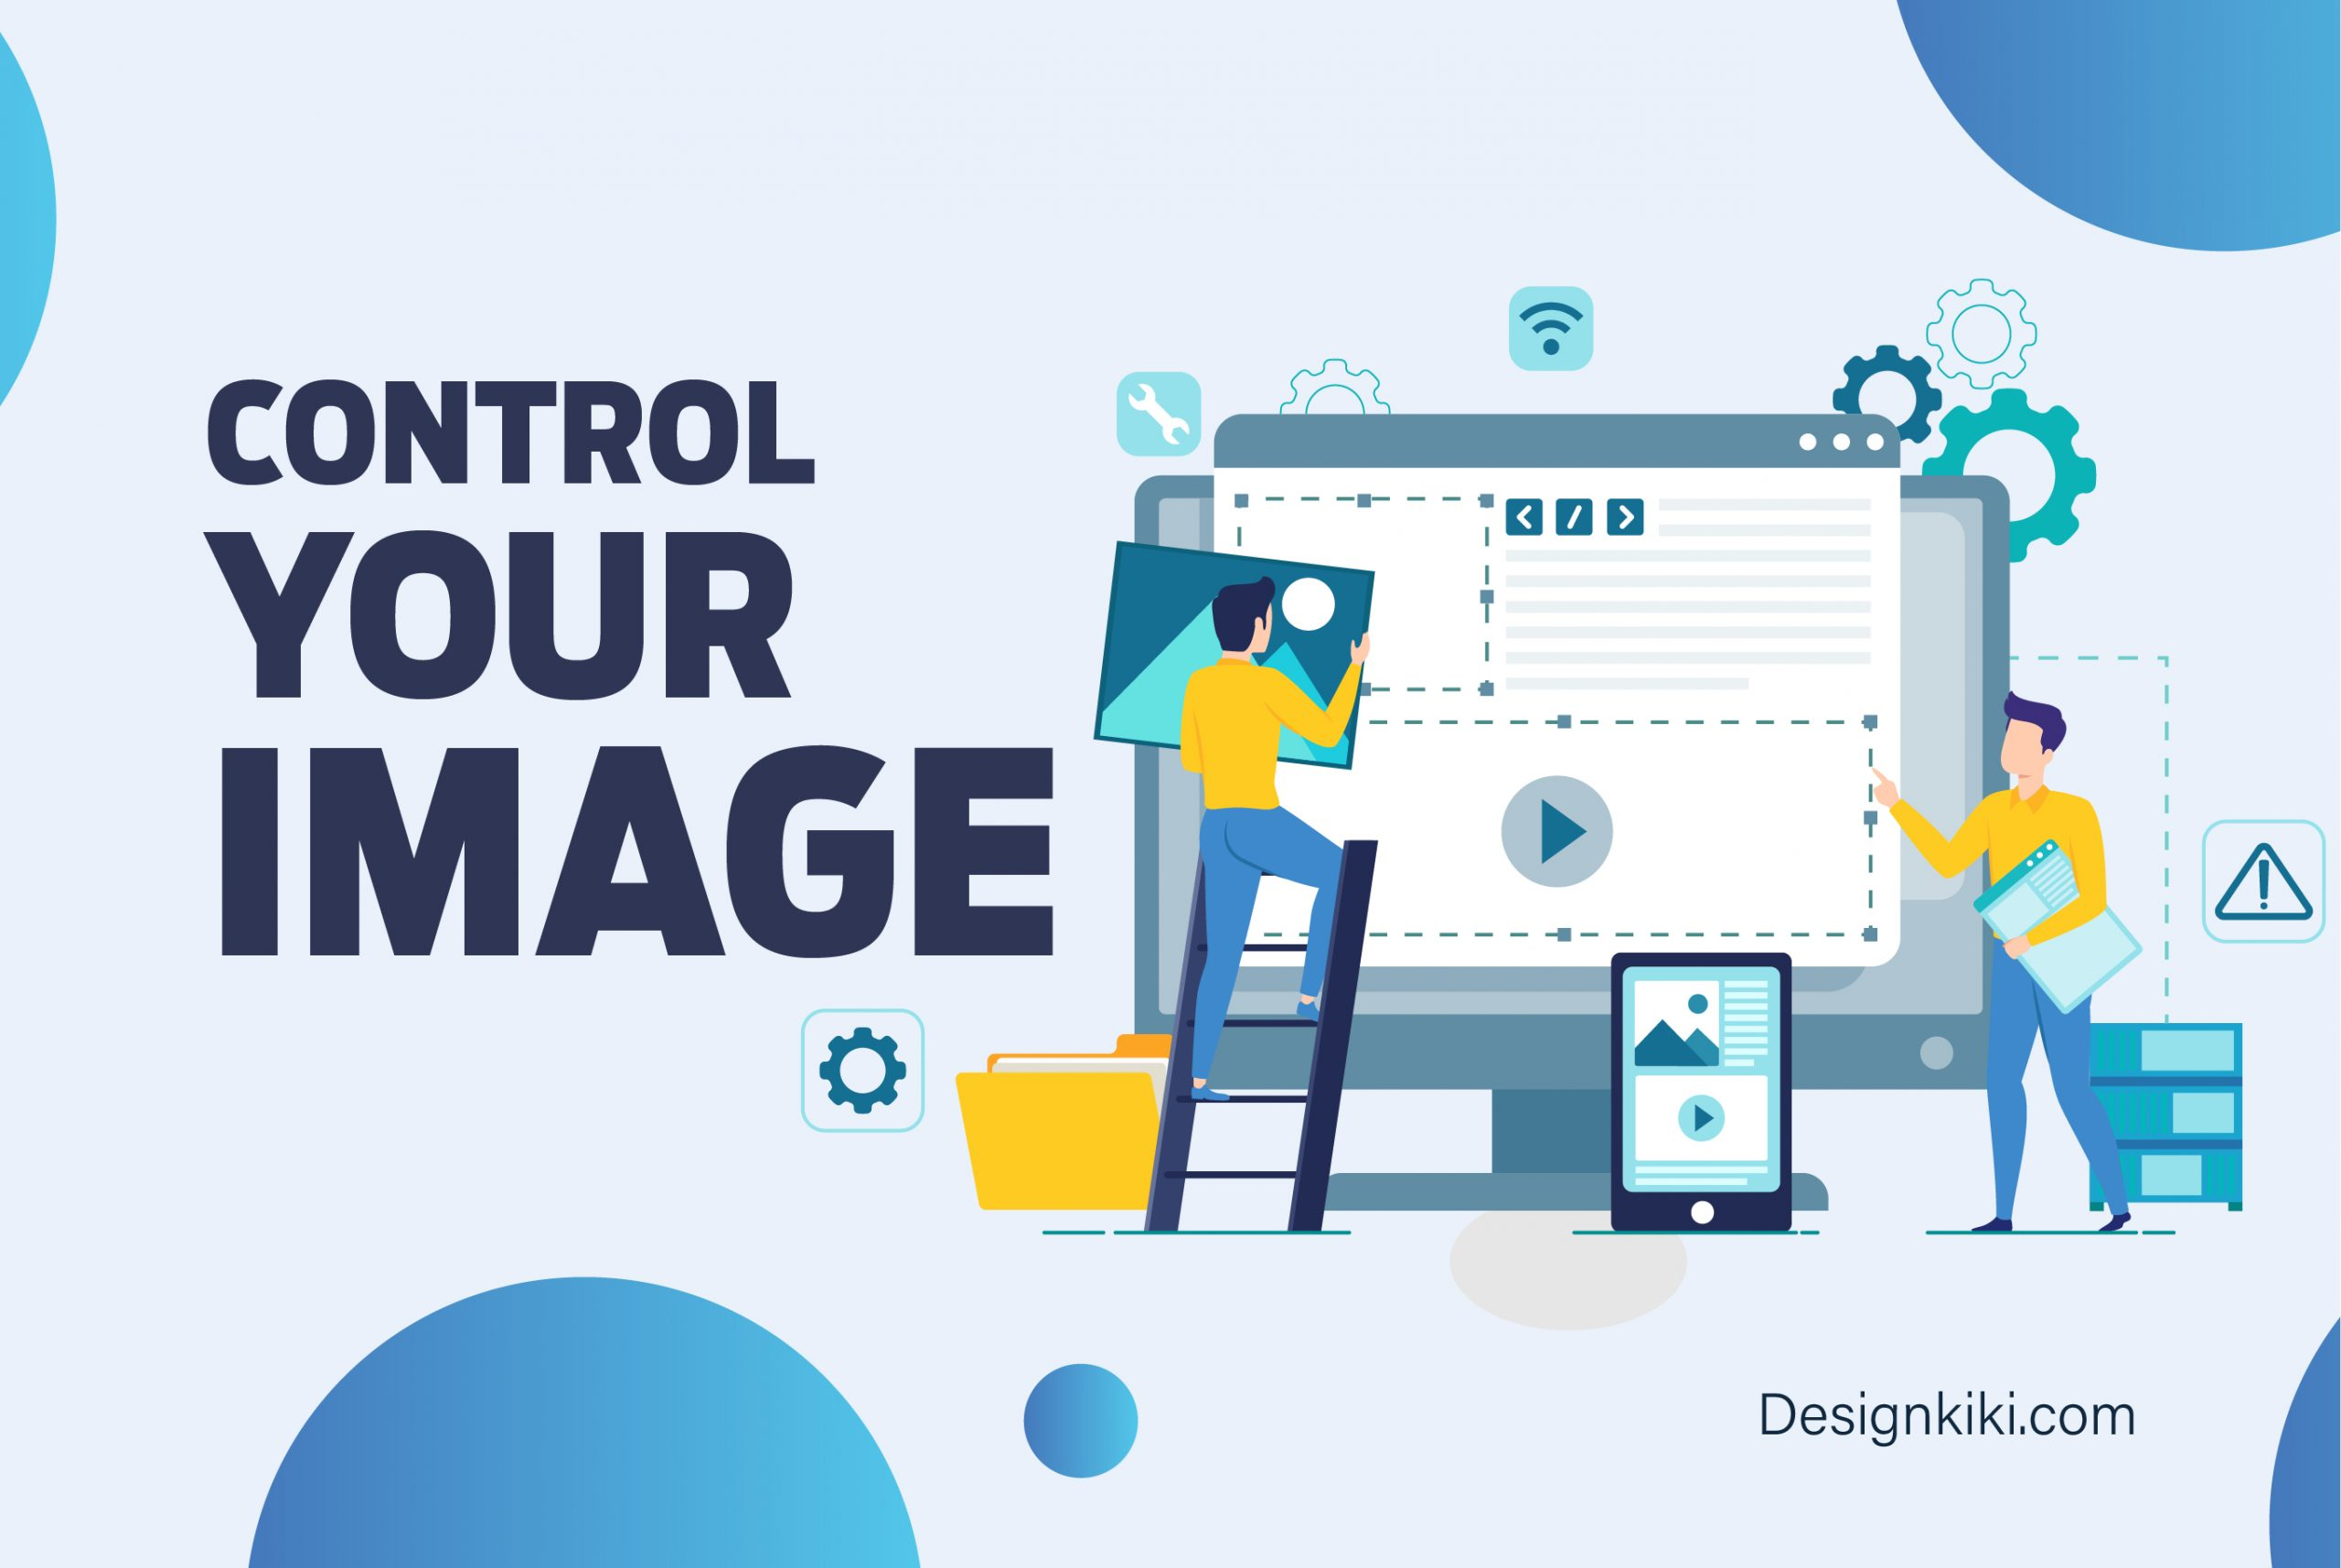 Control your image